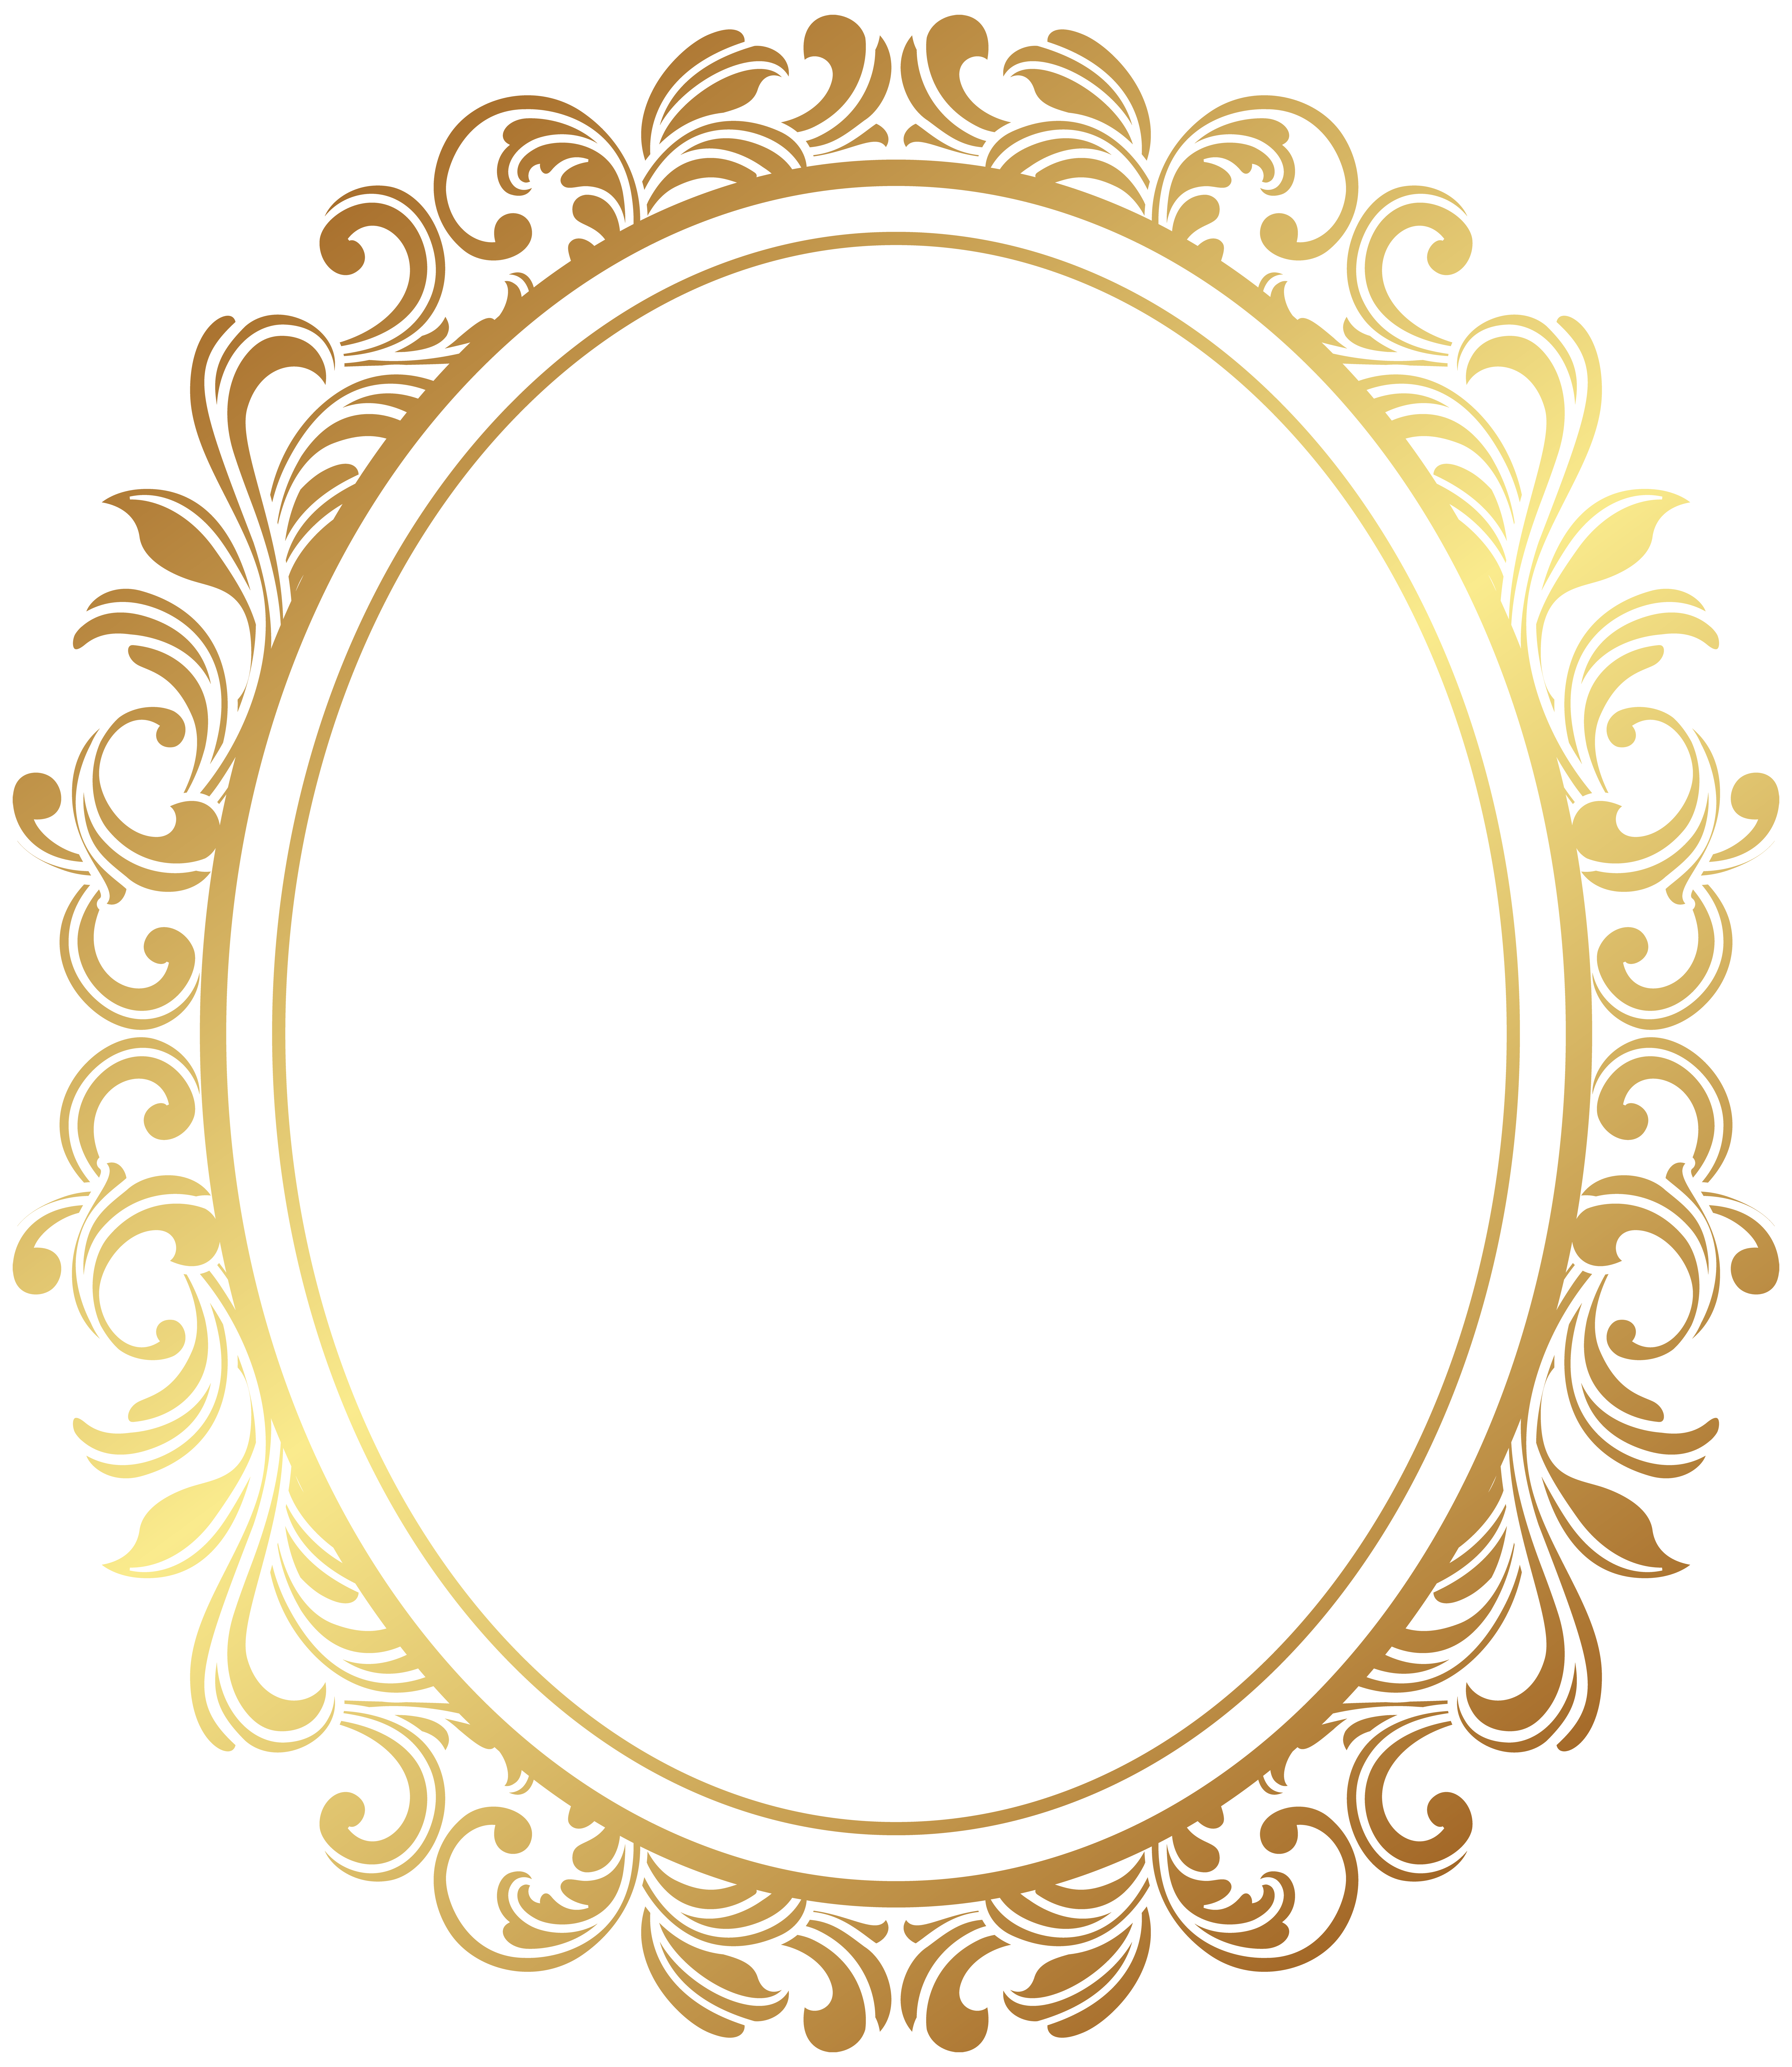 Oval Border Deco Frame Png Clip Art Gallery Yopriceville High Quality Images And Transparent Png Free Clipart Royal Frame Puzzle Art Photo Frame